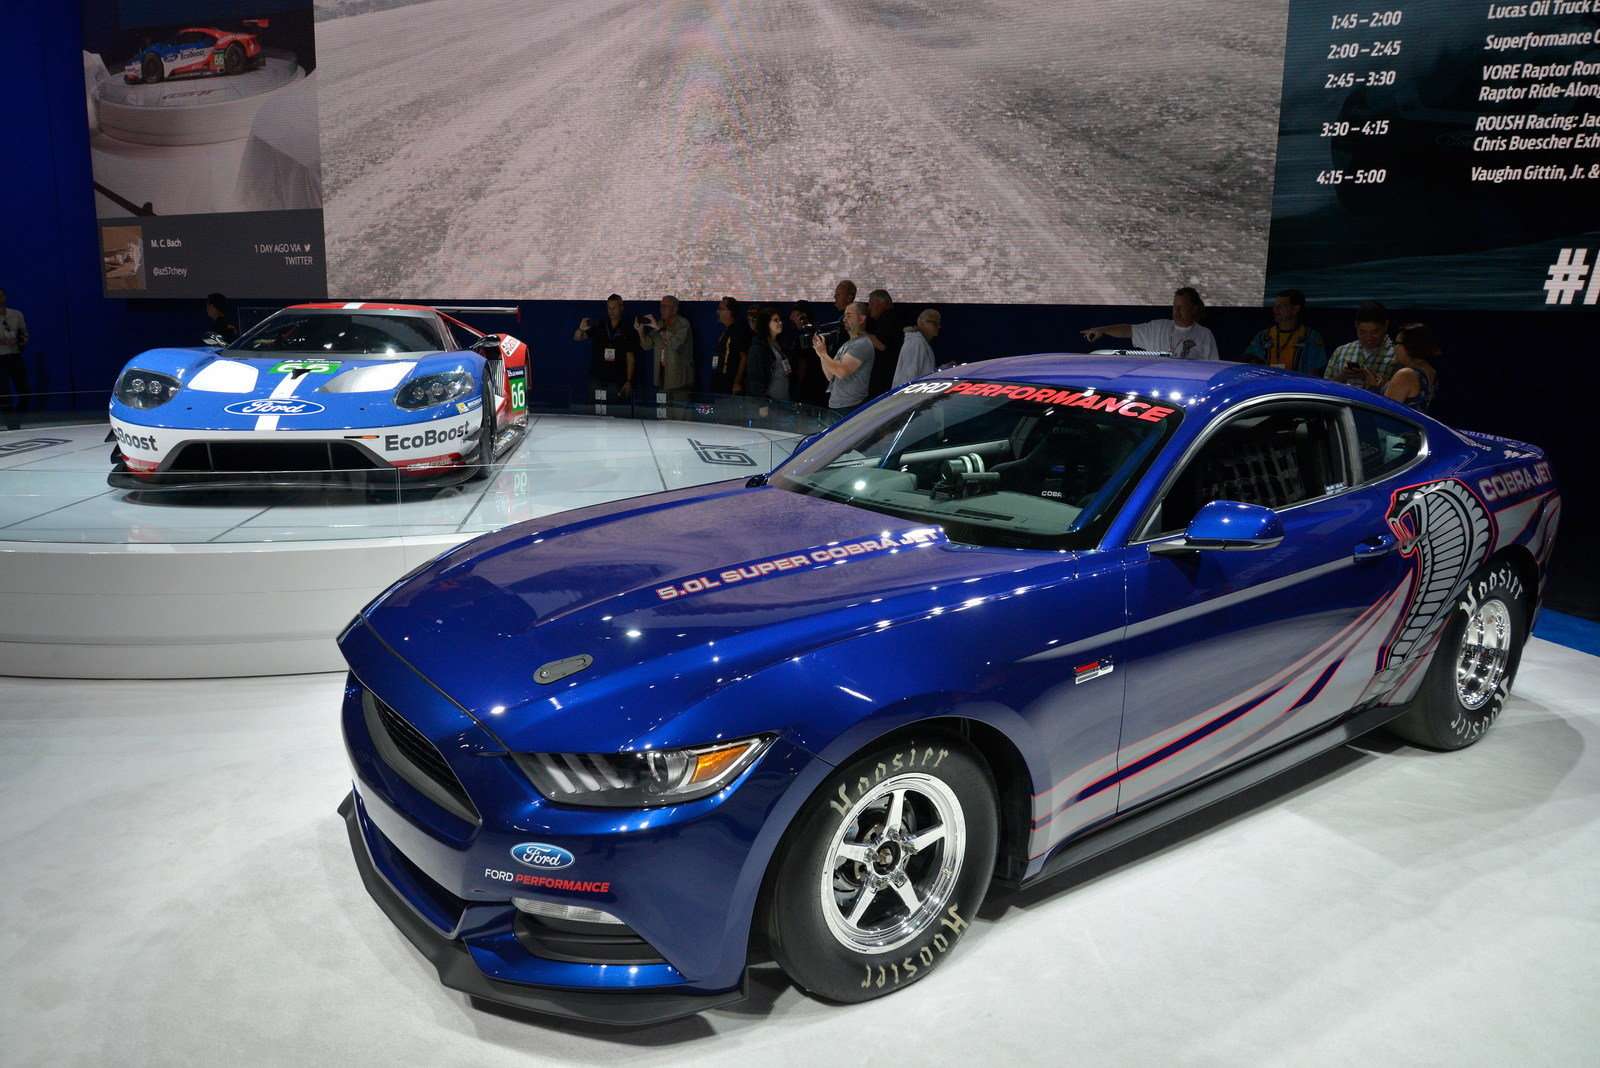 2016 ford mustang cobra jet picture 654328 car review top speed. Black Bedroom Furniture Sets. Home Design Ideas